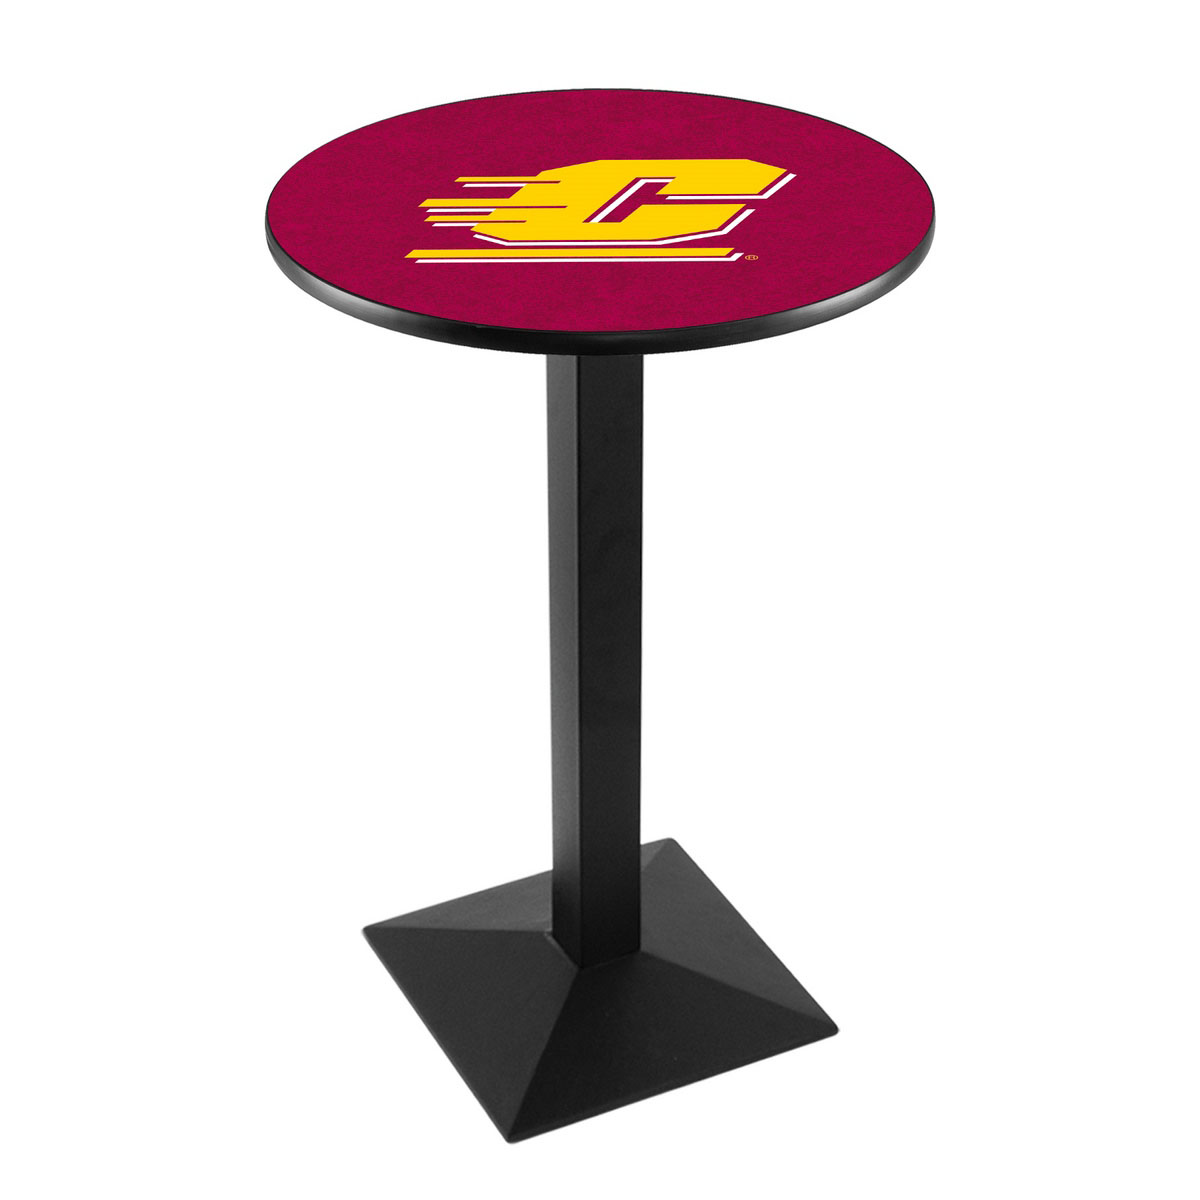 Buy Central Michigan University Logo Pub Bar Table Square Stand Product Photo